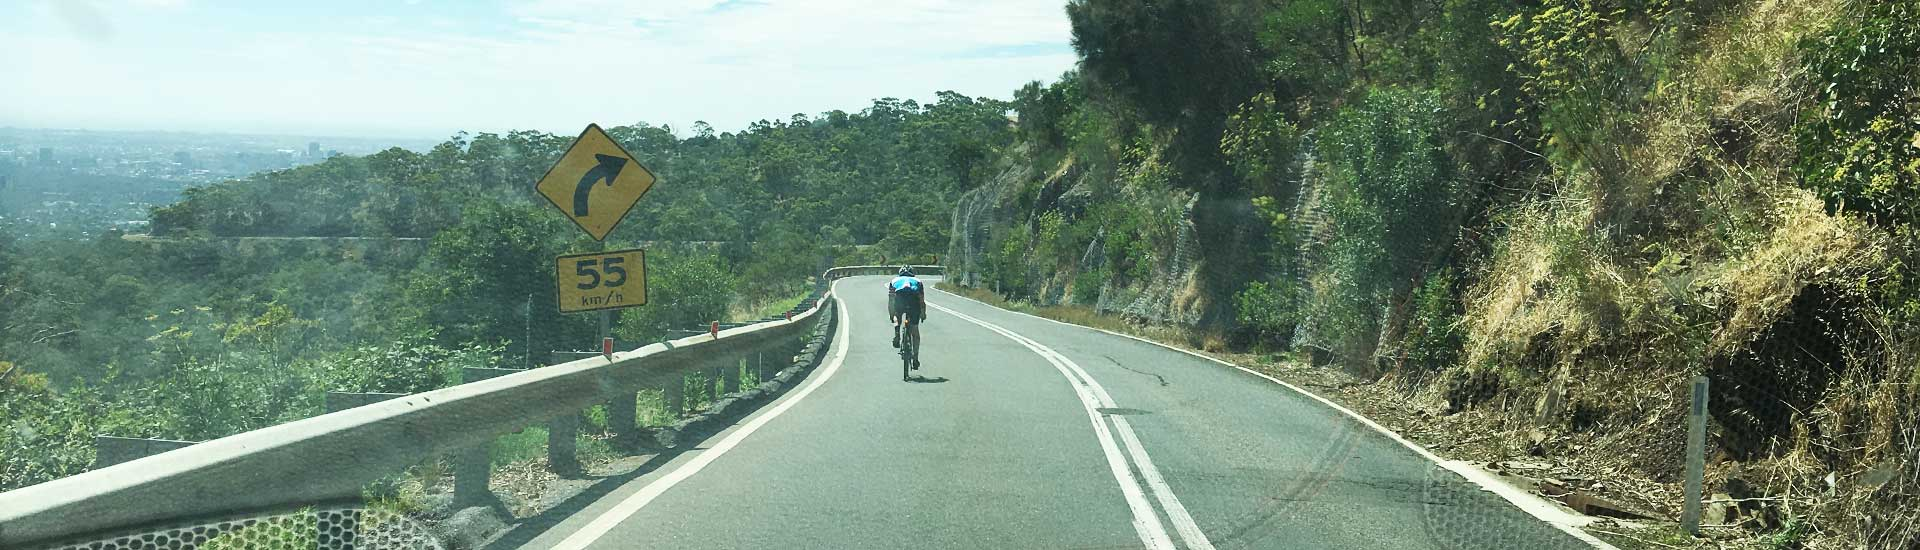 Hahndorf, Mount Lofty and crazy bike rider ⋆ Hatch a Holiday